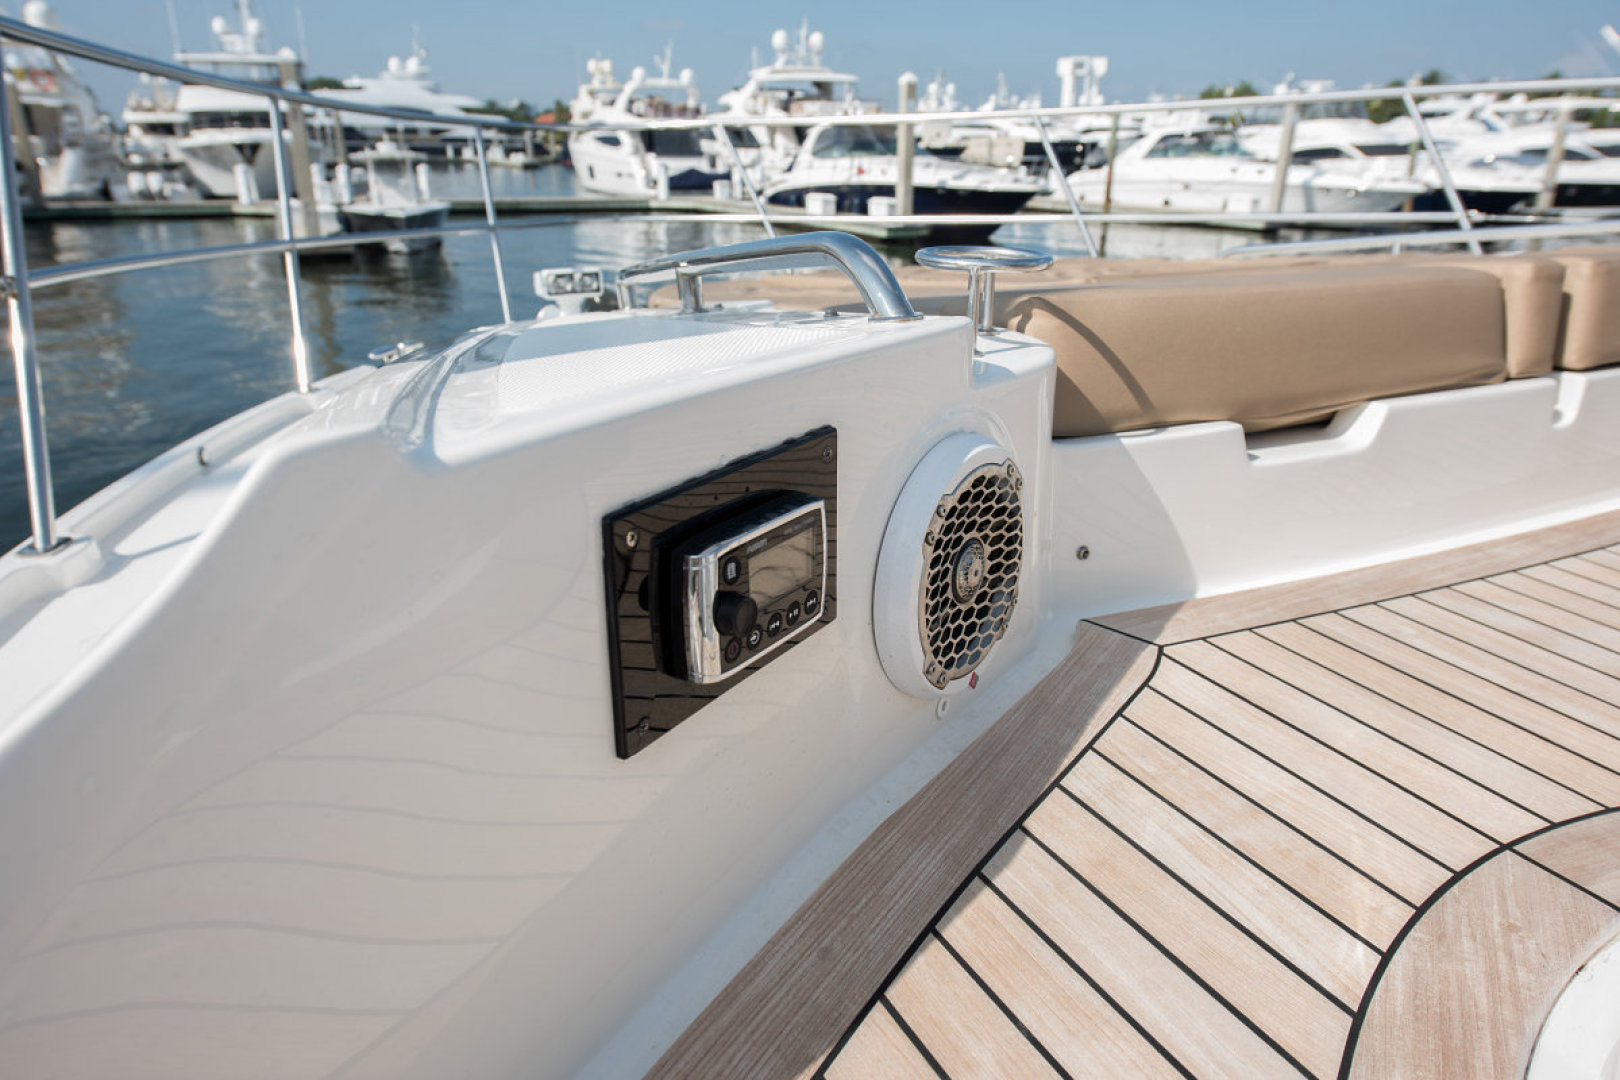 Sea Ray-L590 Fly 2016-2016 Sea Ray L590 Fly Ft. Lauderdale-Florida-United States-1284617 | Thumbnail